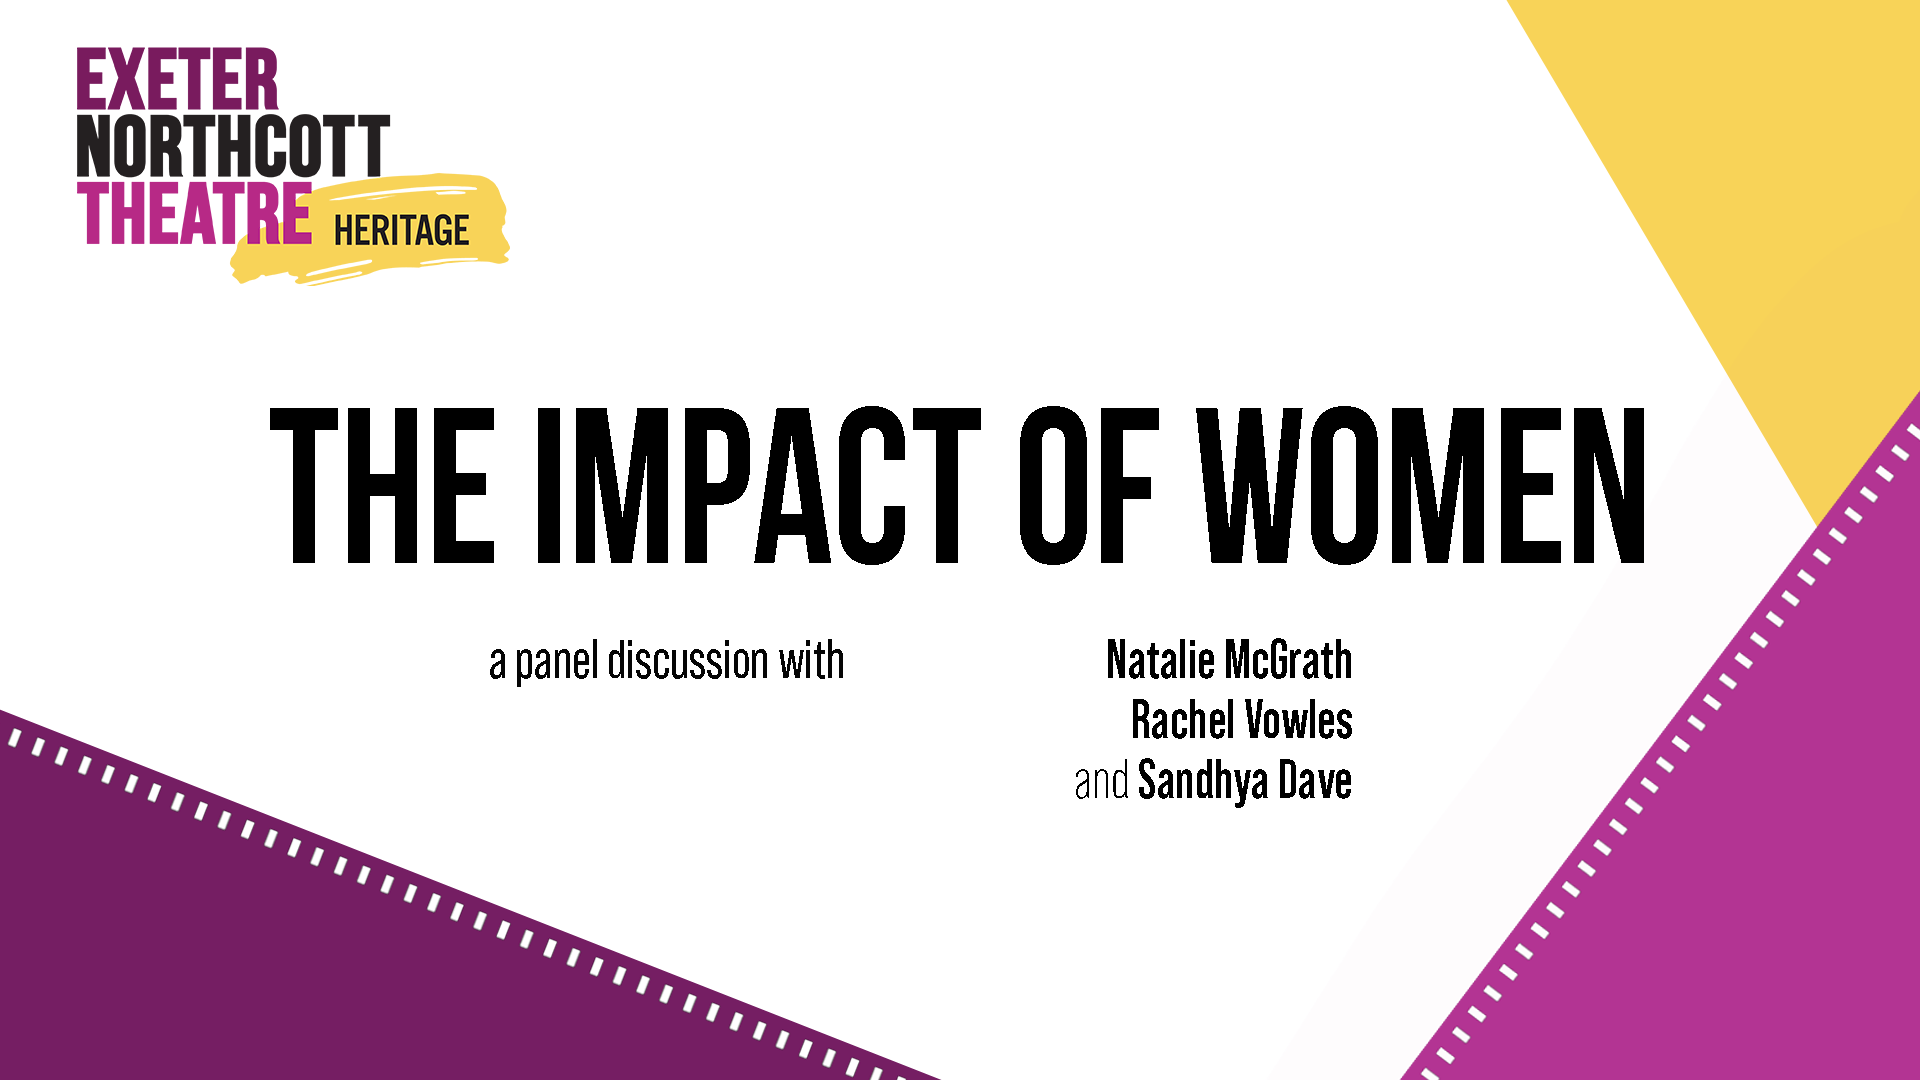 Exeter Northcott Theatre Heritage logo + text: THE IMPACT OF WOMEN a panel discussion with Natalie McGrath, Rachel Vowles and Sandhya Dave